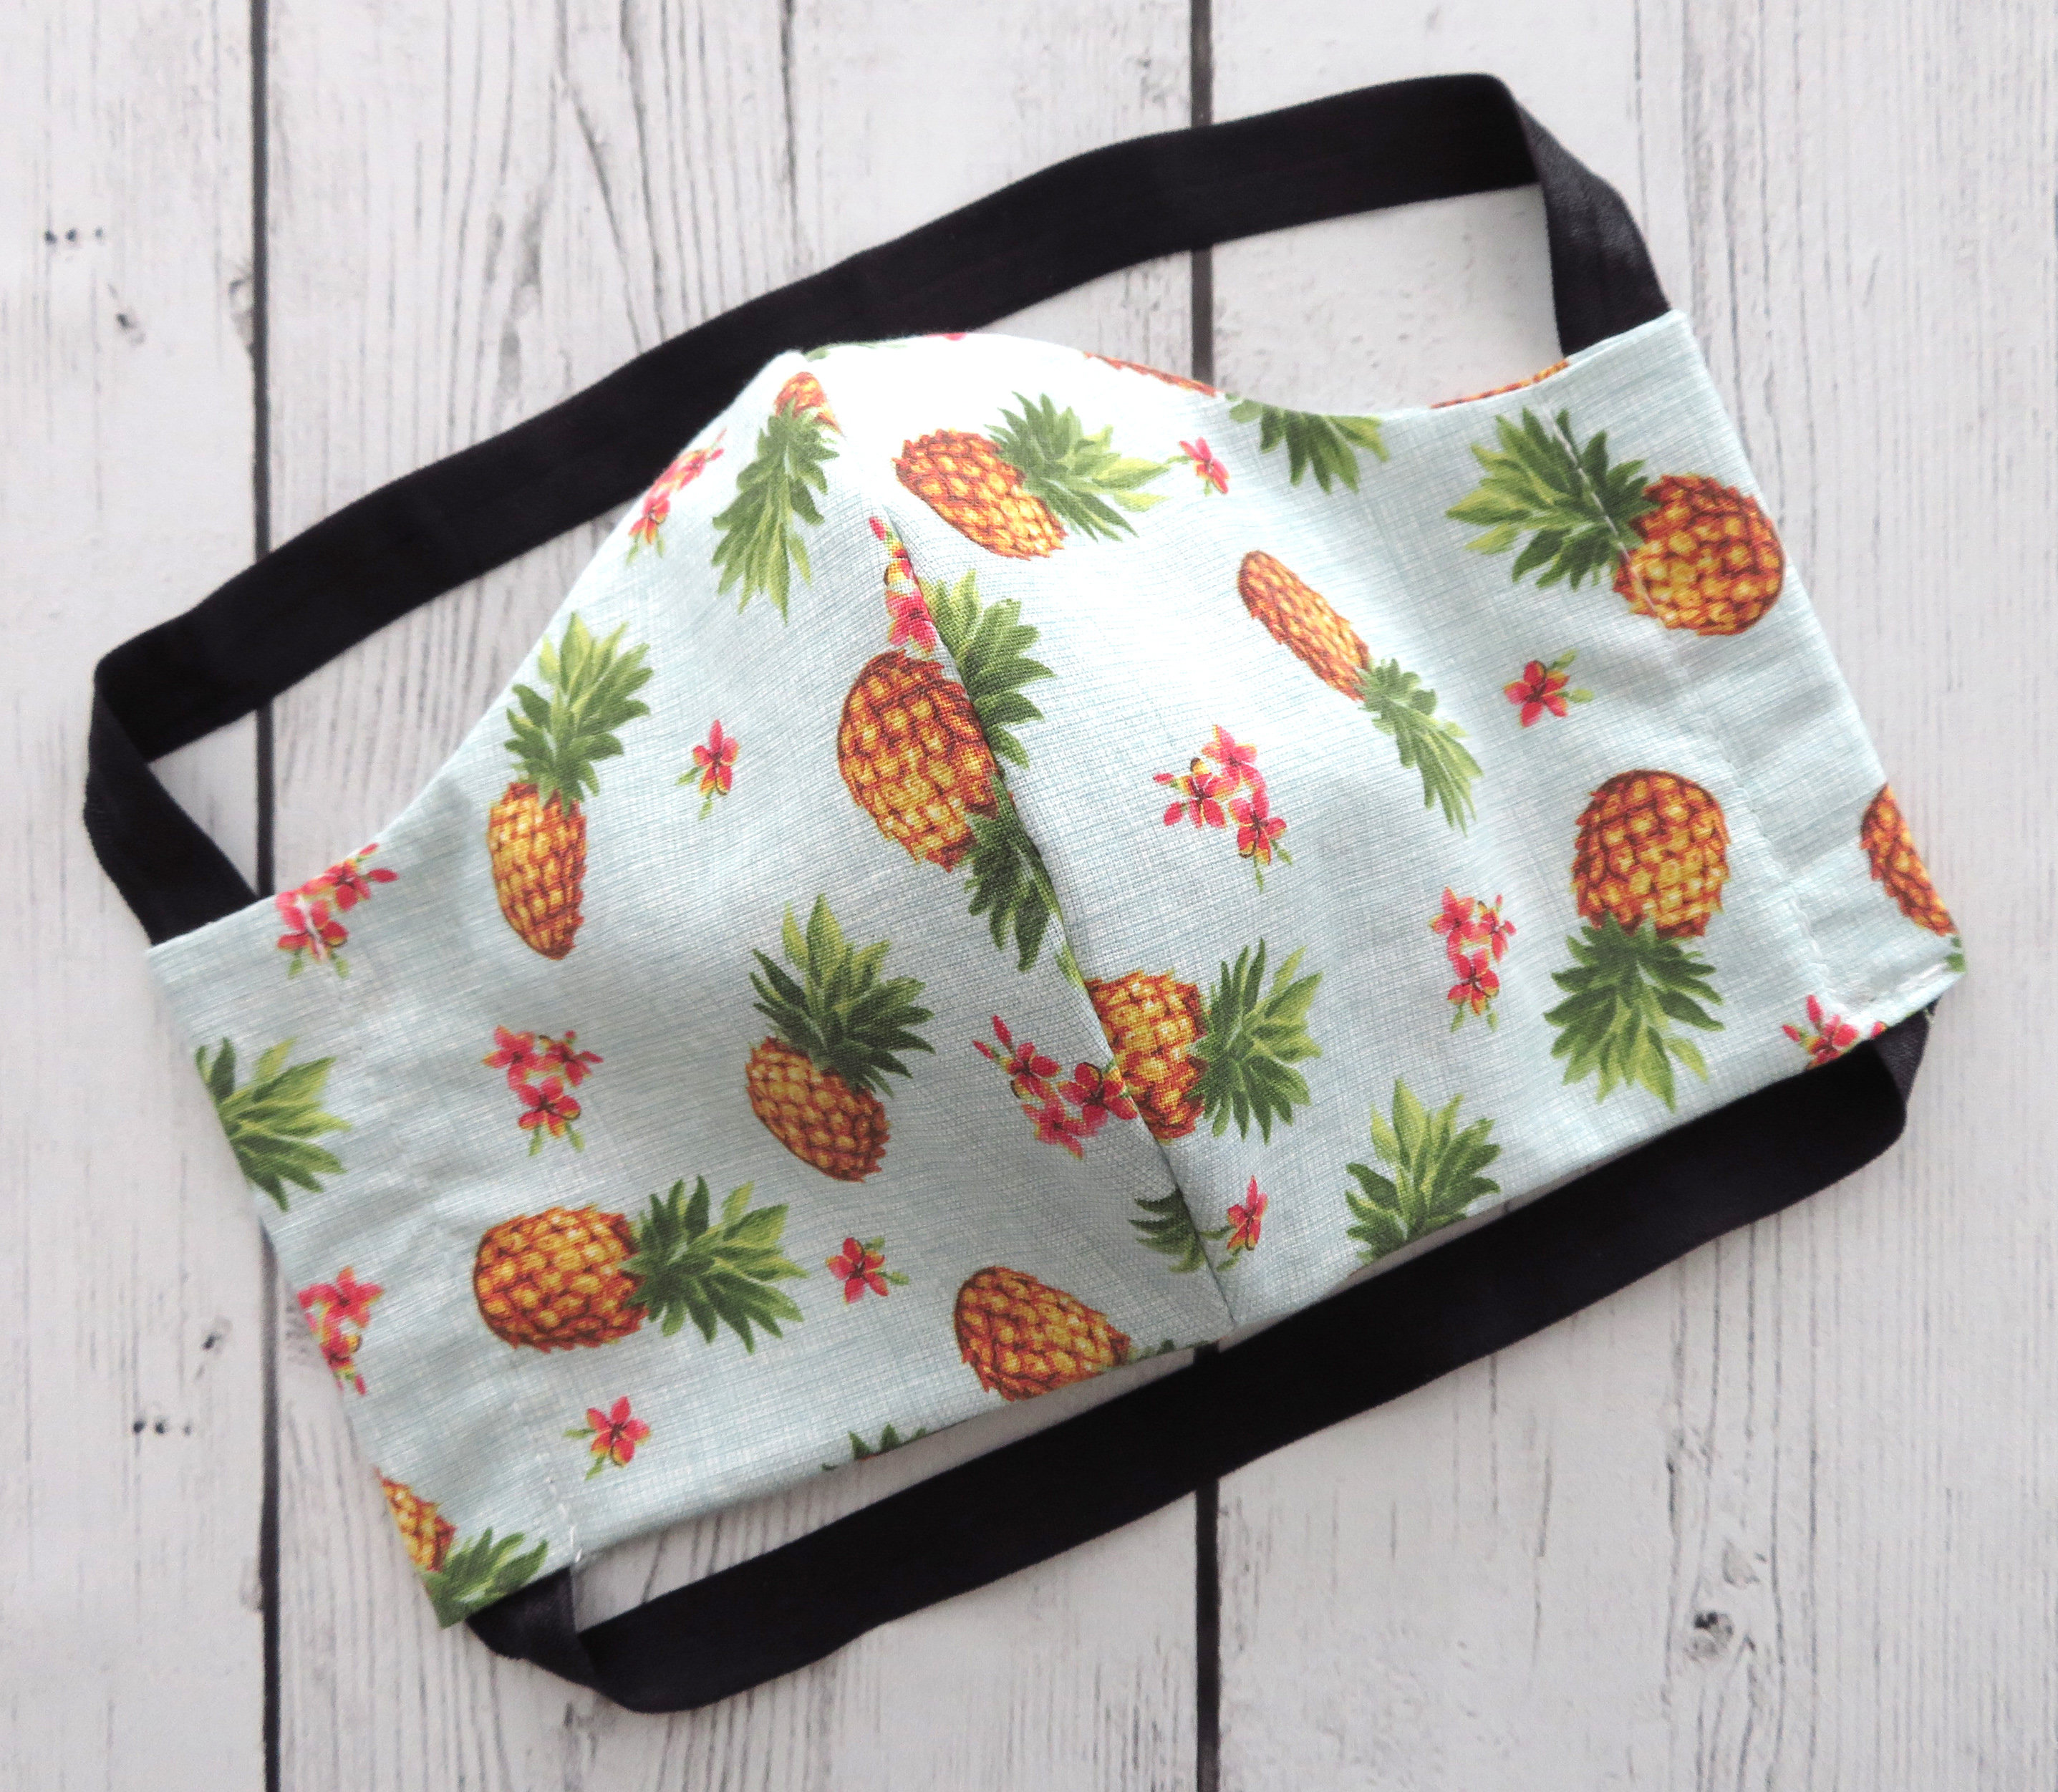 TEEN (Ages 9-15) Face Mask in tropical pineapple print - handmade cotton, washable & re-usable, comfortable head elastic, gender neutral